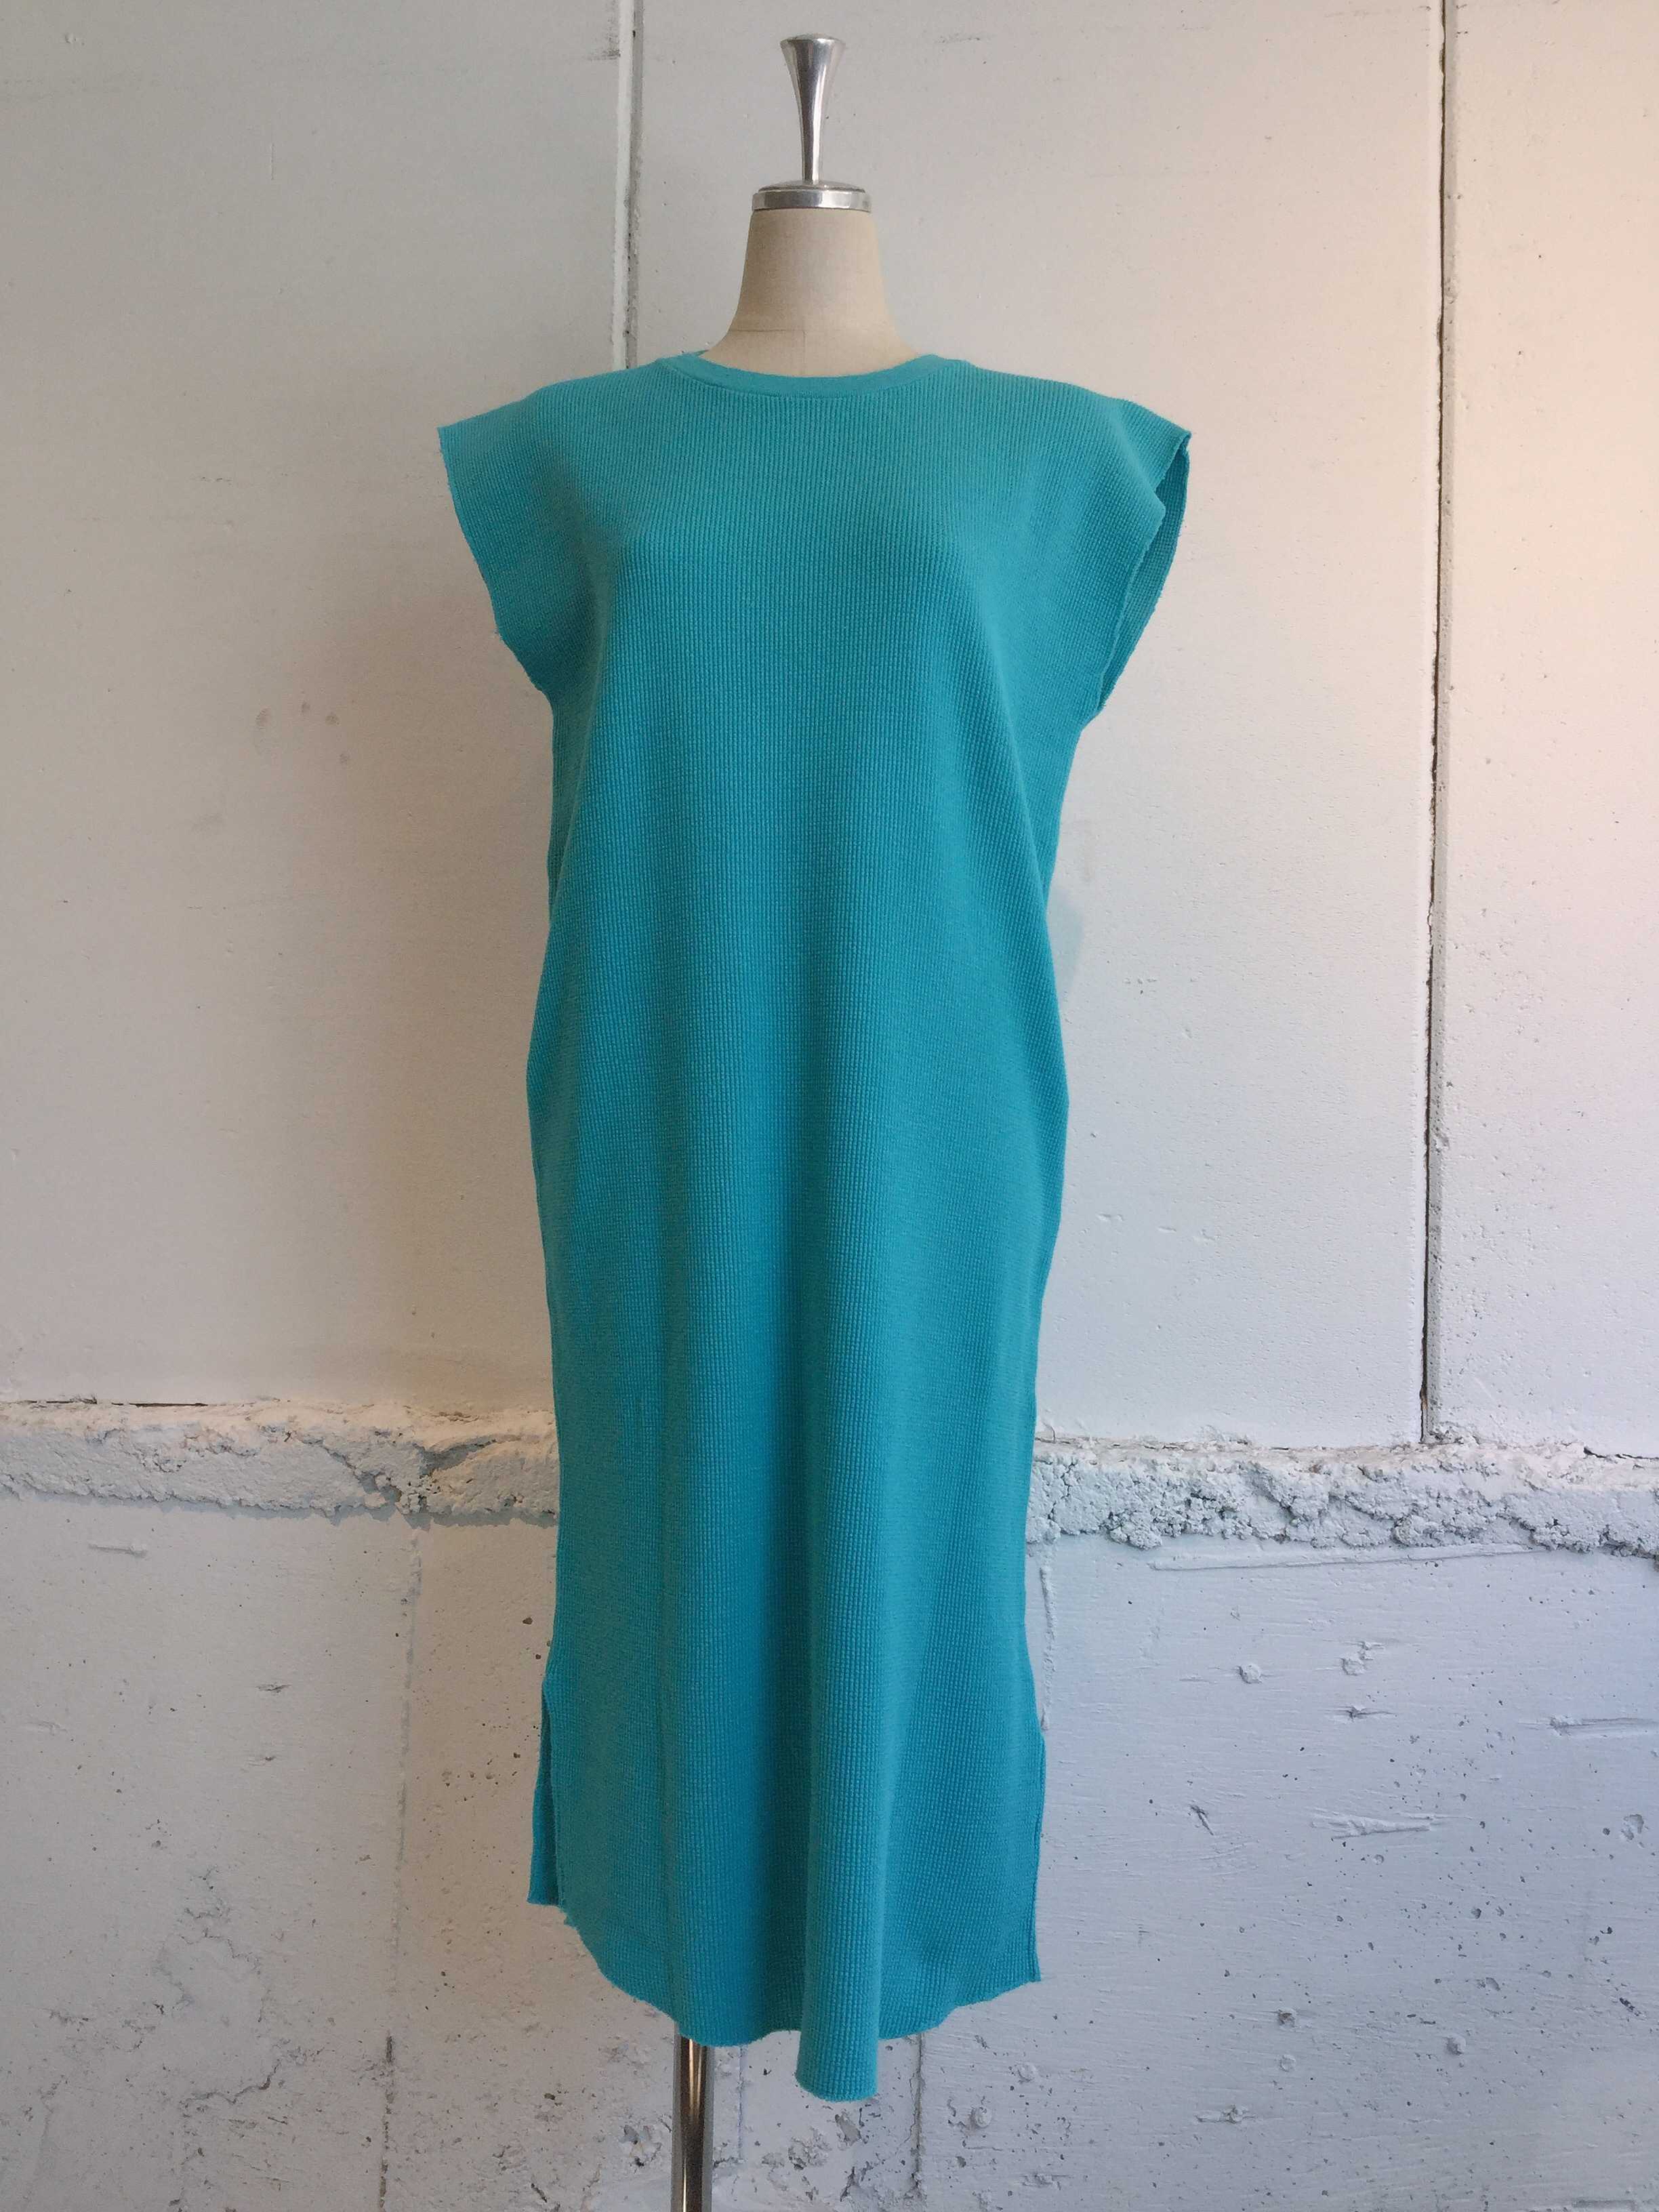 FILL THE BILL THERMAL NO SLEEVE ONEPIECE (TURQUOISE BLUE)